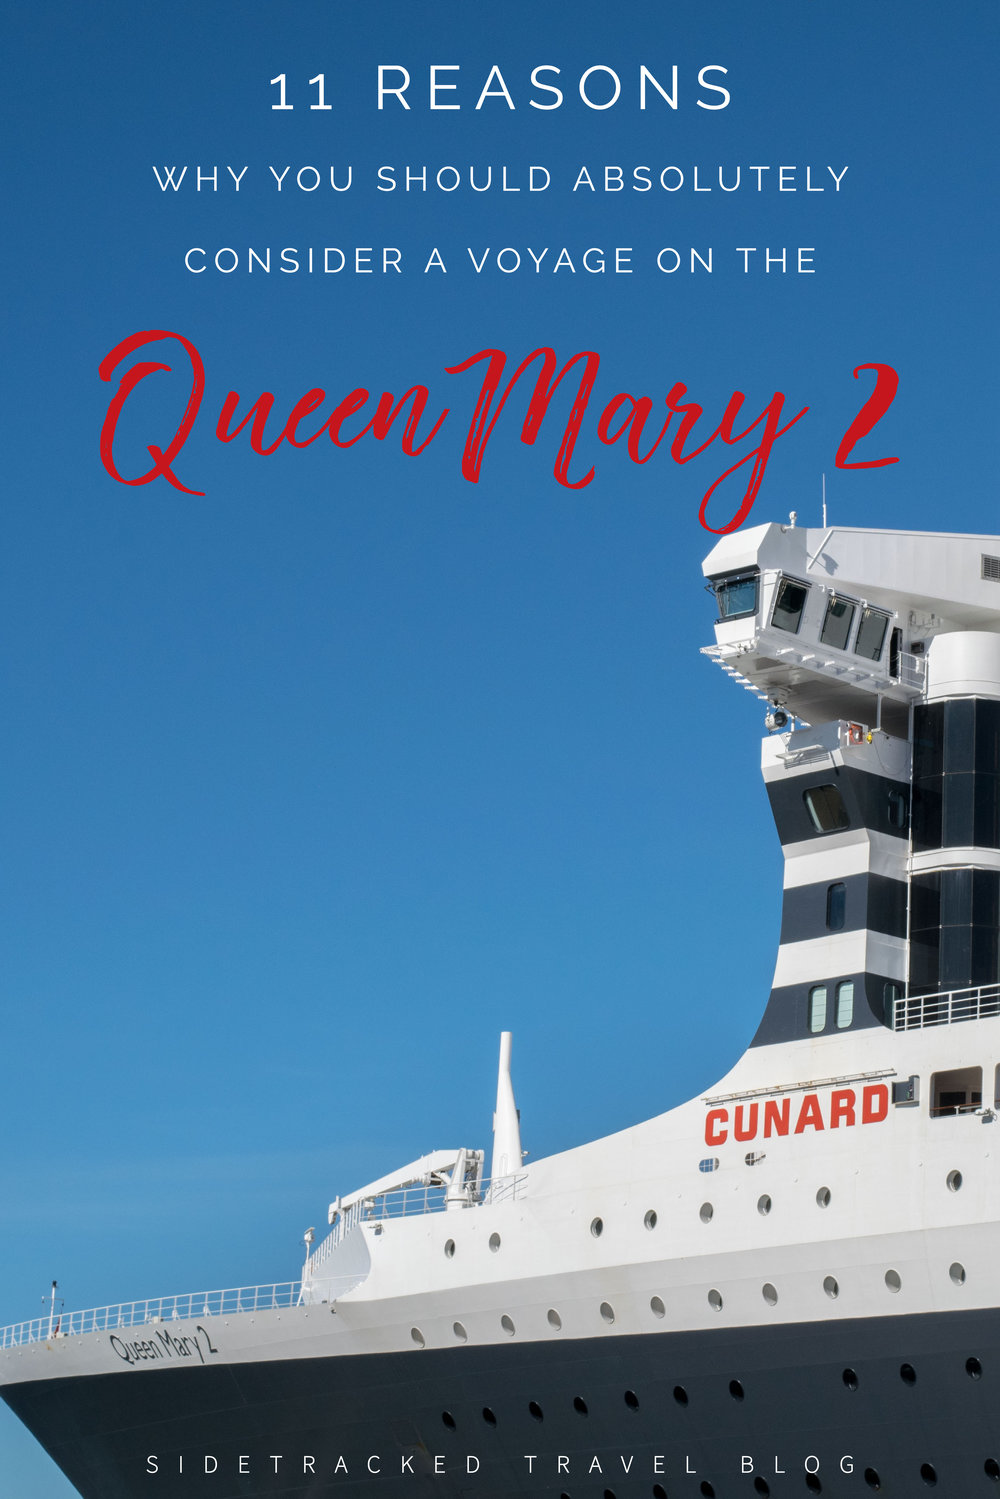 Not everyone will love traveling on the Queen Mary 2, but nobody will be able to say that it isn't a worthwhile experience that stays with them. Here are 11 reasons why you should absolutely consider a voyage on the Queen Mary 2.